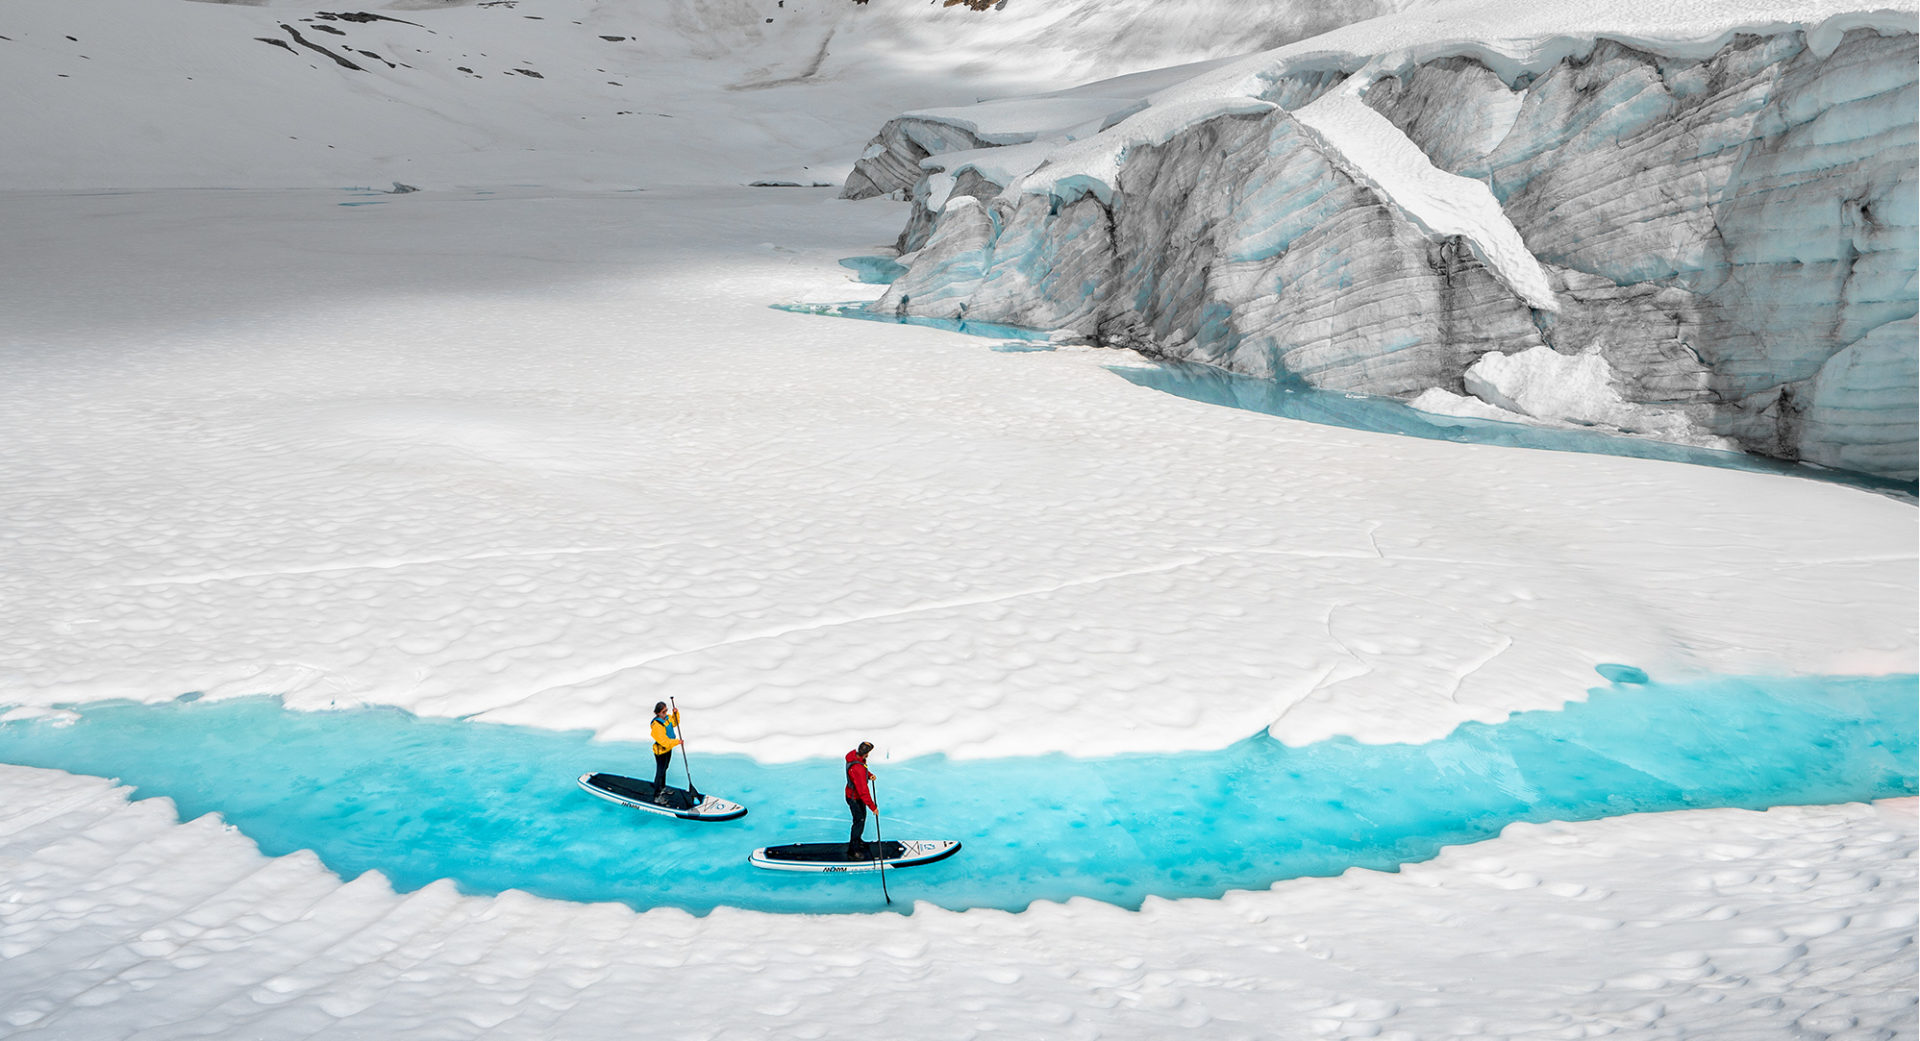 Tourism Campbell River Stand Up Paddle Board Glacier